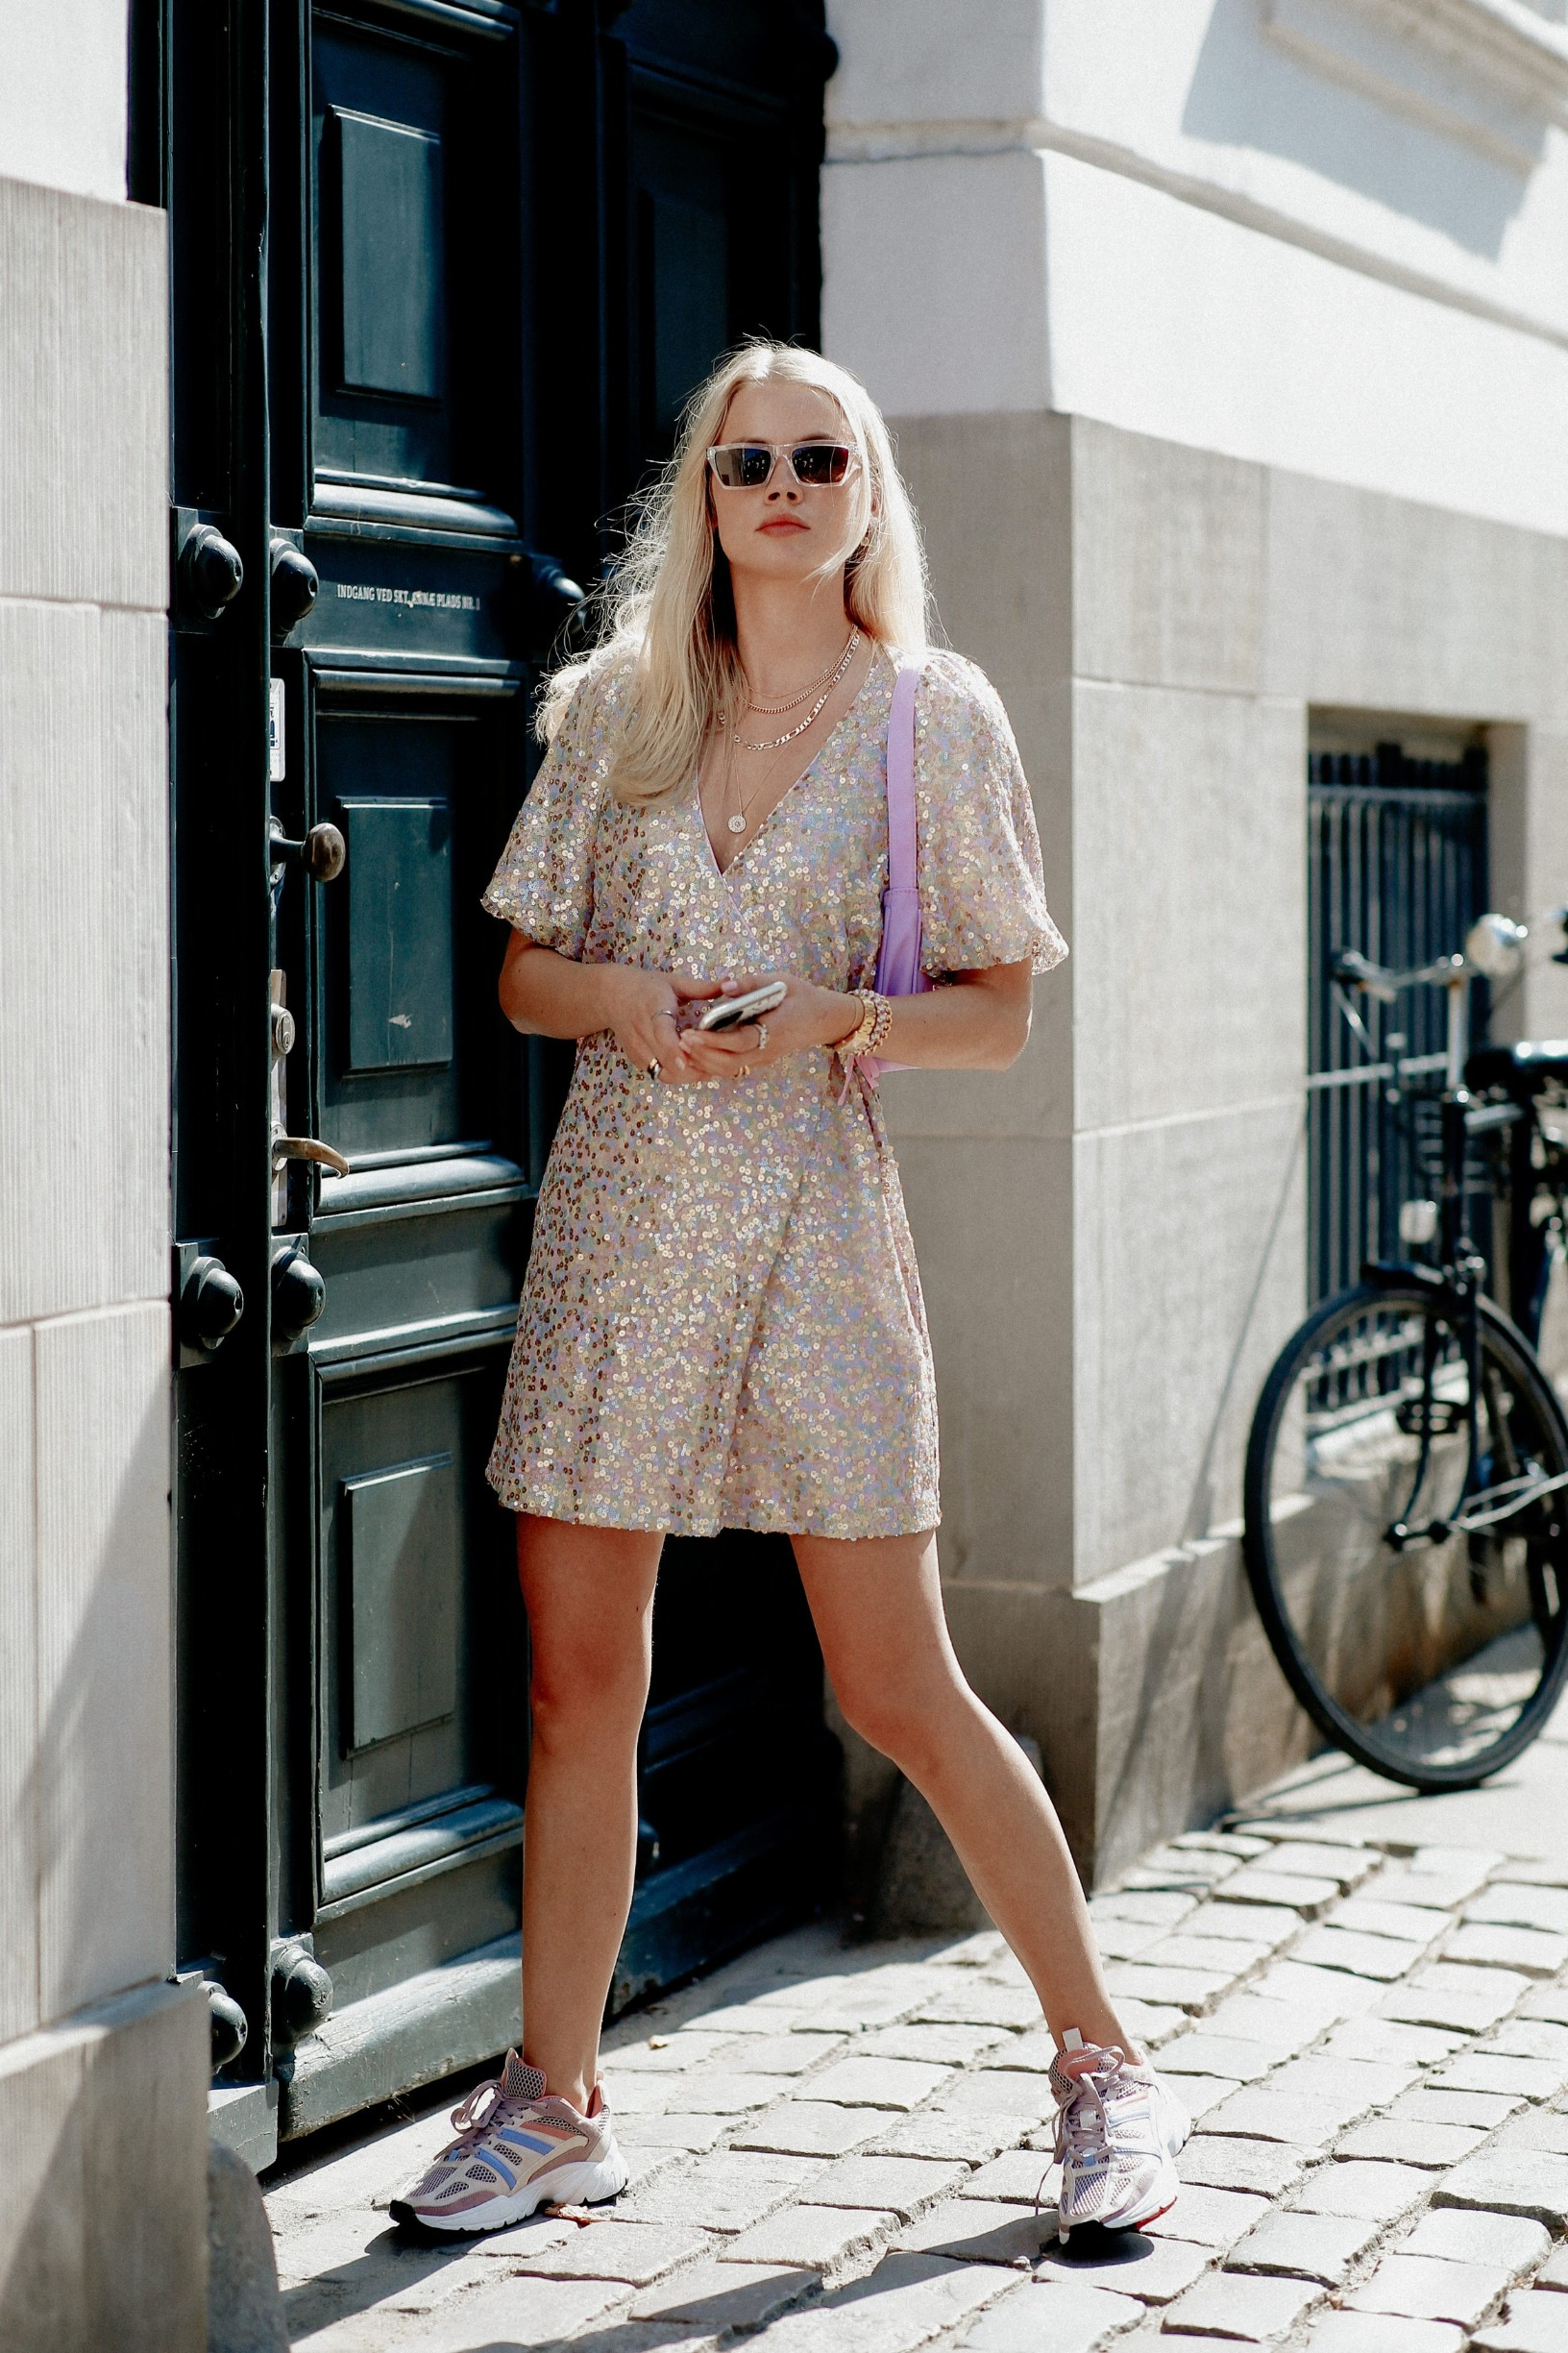 Street style, Andrea Steen arriving at Mfpen Spring Summer 2021 show, held at Bredgade, Copenhagen, Denmark, on August 12, 2020.,Image: 554929867, License: Rights-managed, Restrictions: , Model Release: no, Credit line: Bertrand-Hillion Marie-Paola/ABACA / Abaca Press / Profimedia